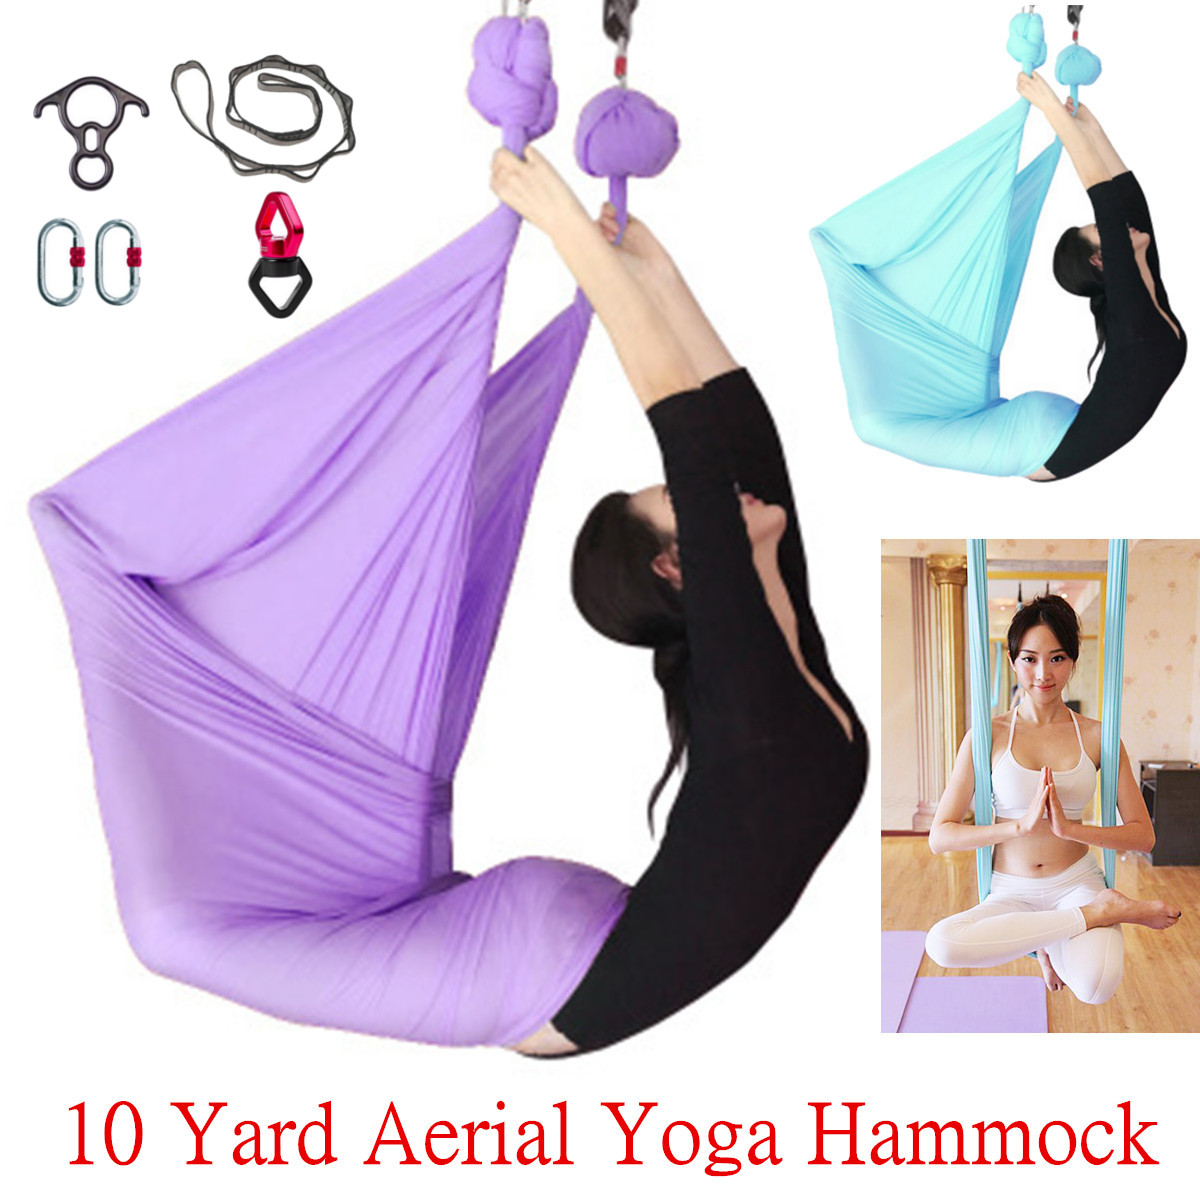 Yoga Adroit 10 Yard 9.2x2.8m Anti-gravity Inversion Yoga Hammock Sling Aerial Pilates Swing Fitness Body Building Equipment Yoga Belts Gym Easy And Simple To Handle